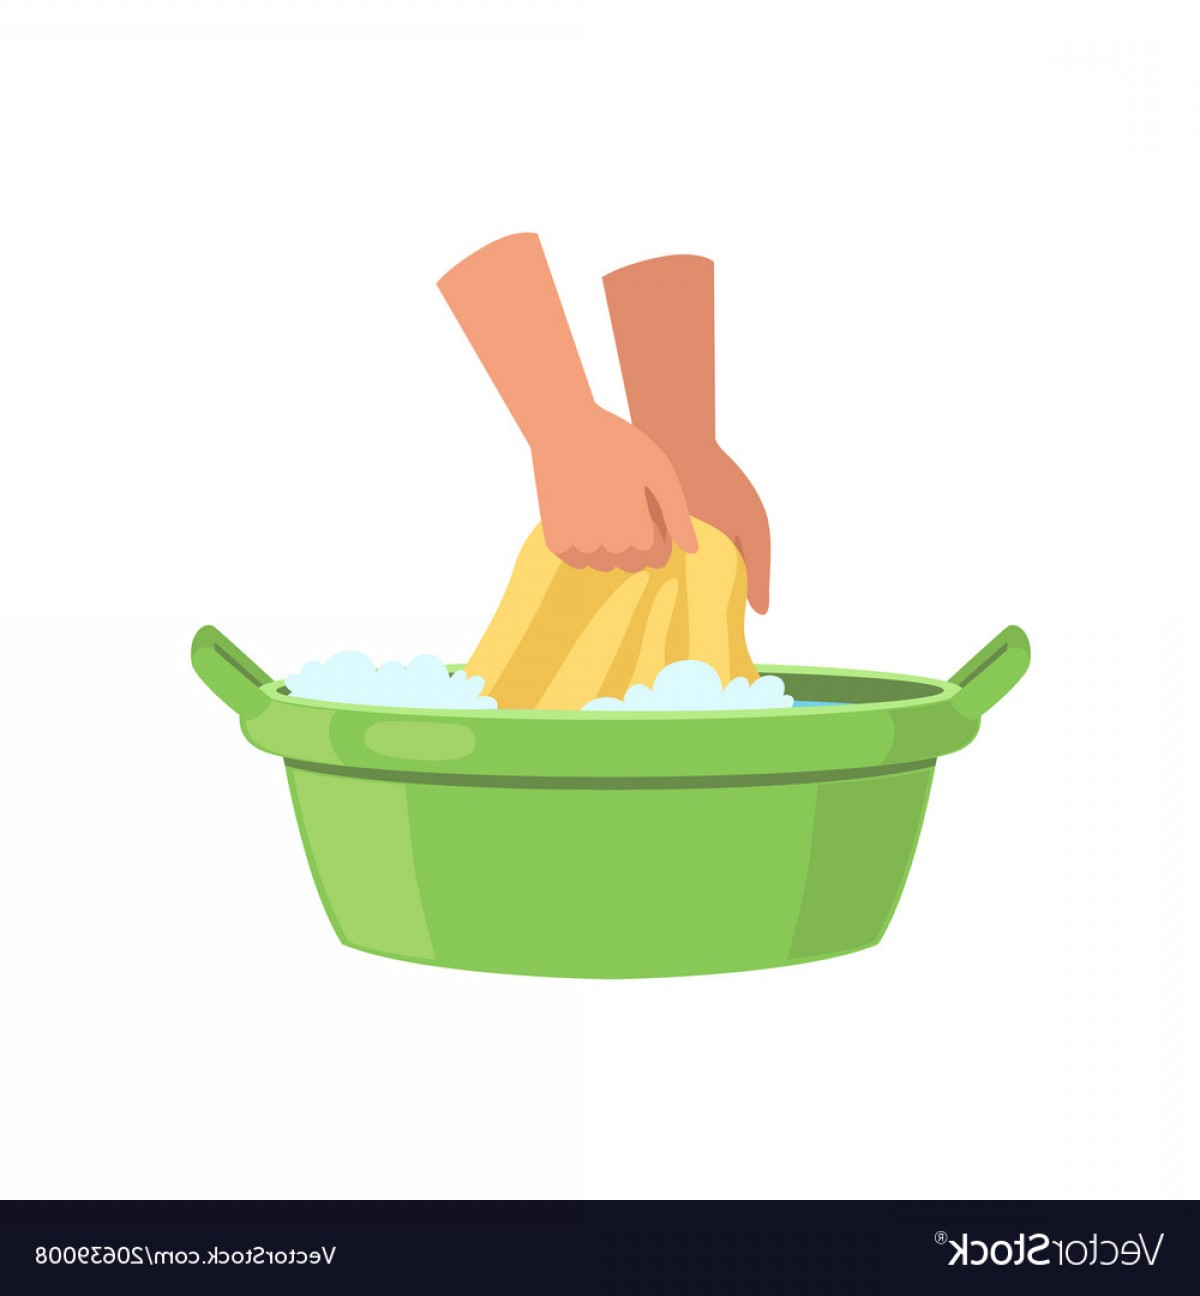 Washing Clothes In Green Basin By Hands Cleaning Vector.